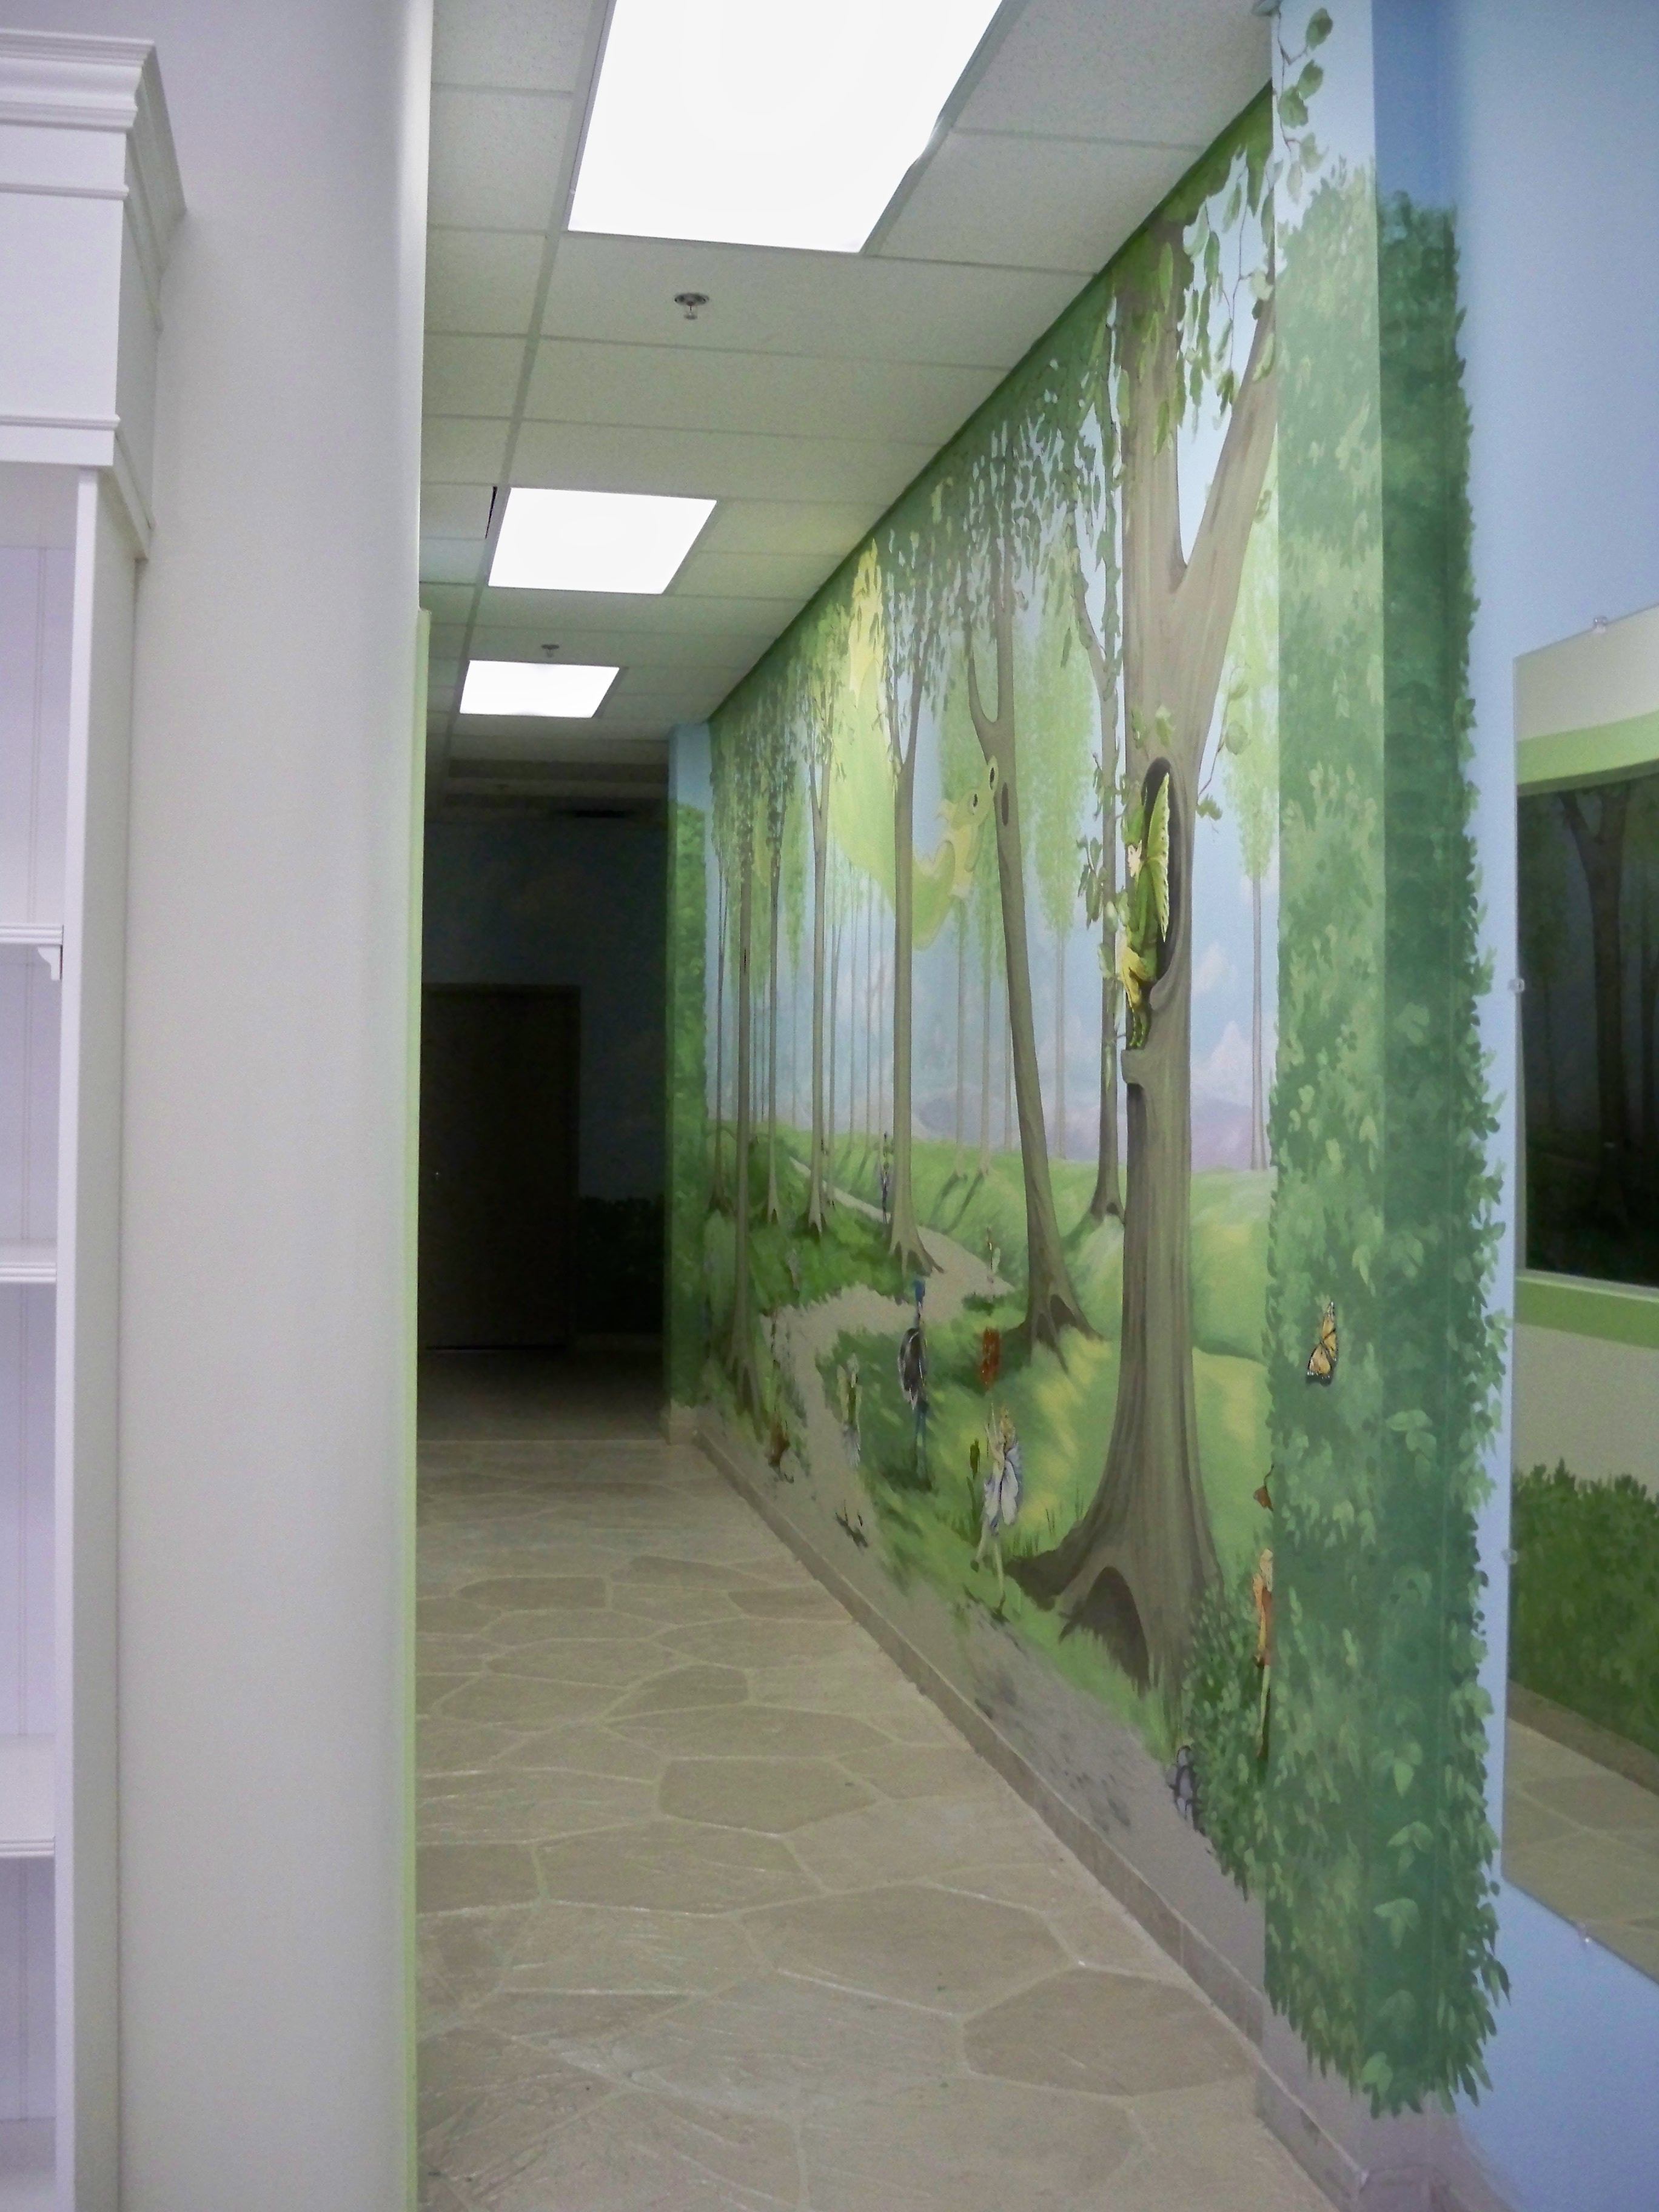 Murals By Marg Commerical Prop Becoming Thornhill Mural 2010 20.jpg